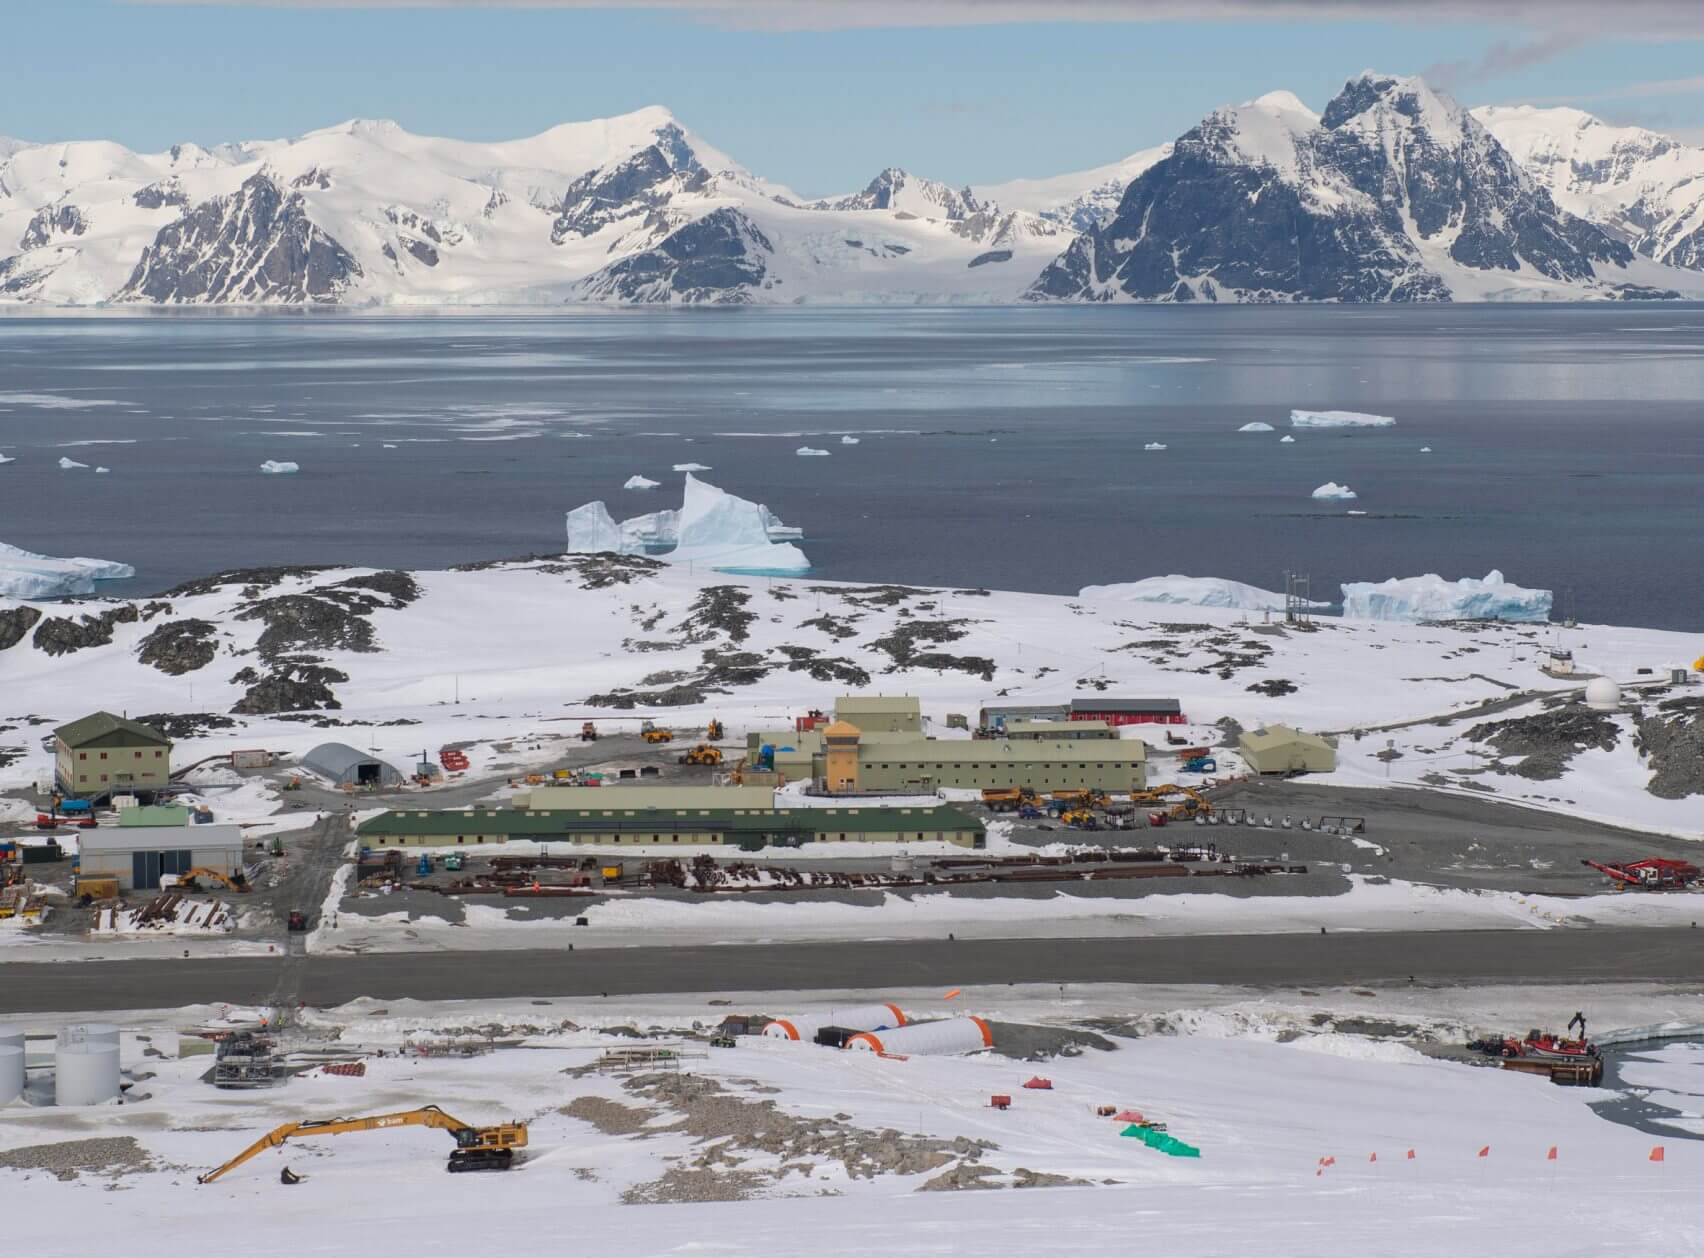 rothera-research-station-british-antarctic-survey-hugh-broughton-architects_dezeen_2364_col_0-1704x1258